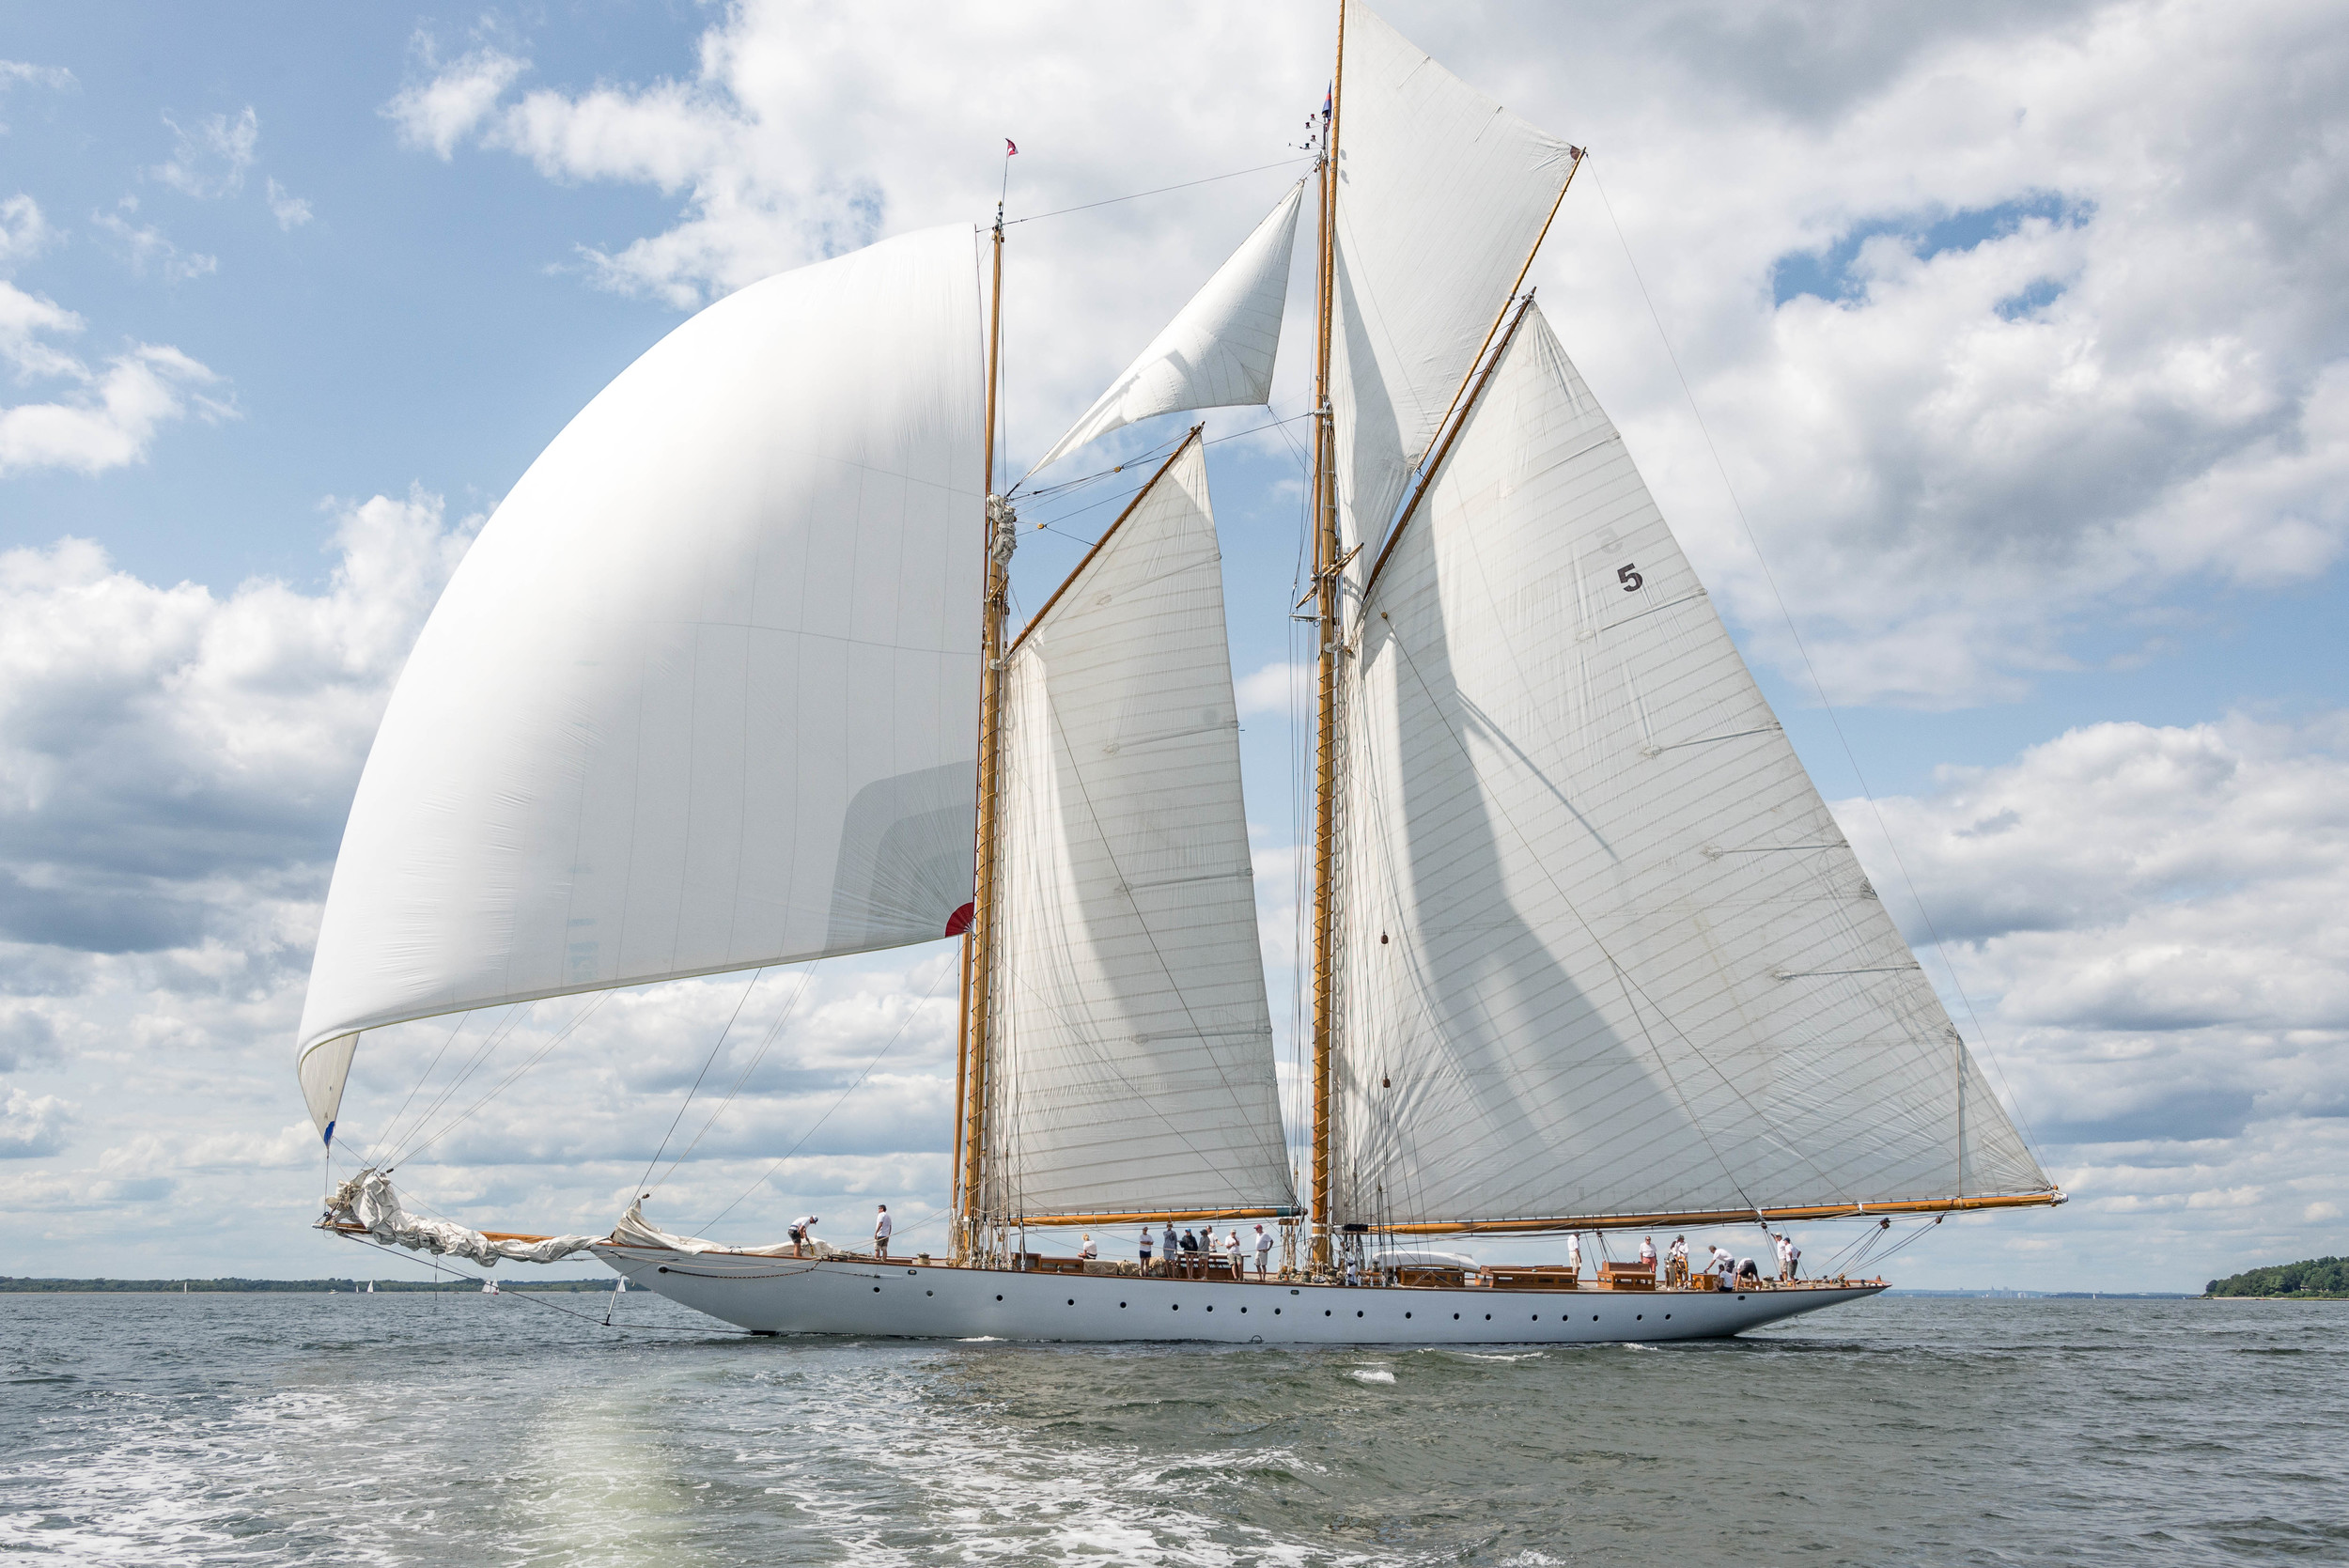 The 165-foot gaff schooner Eleonora, an exact replica of the famed Herreshoff yacht Westward, ghosts along in light breezes at the regatta.